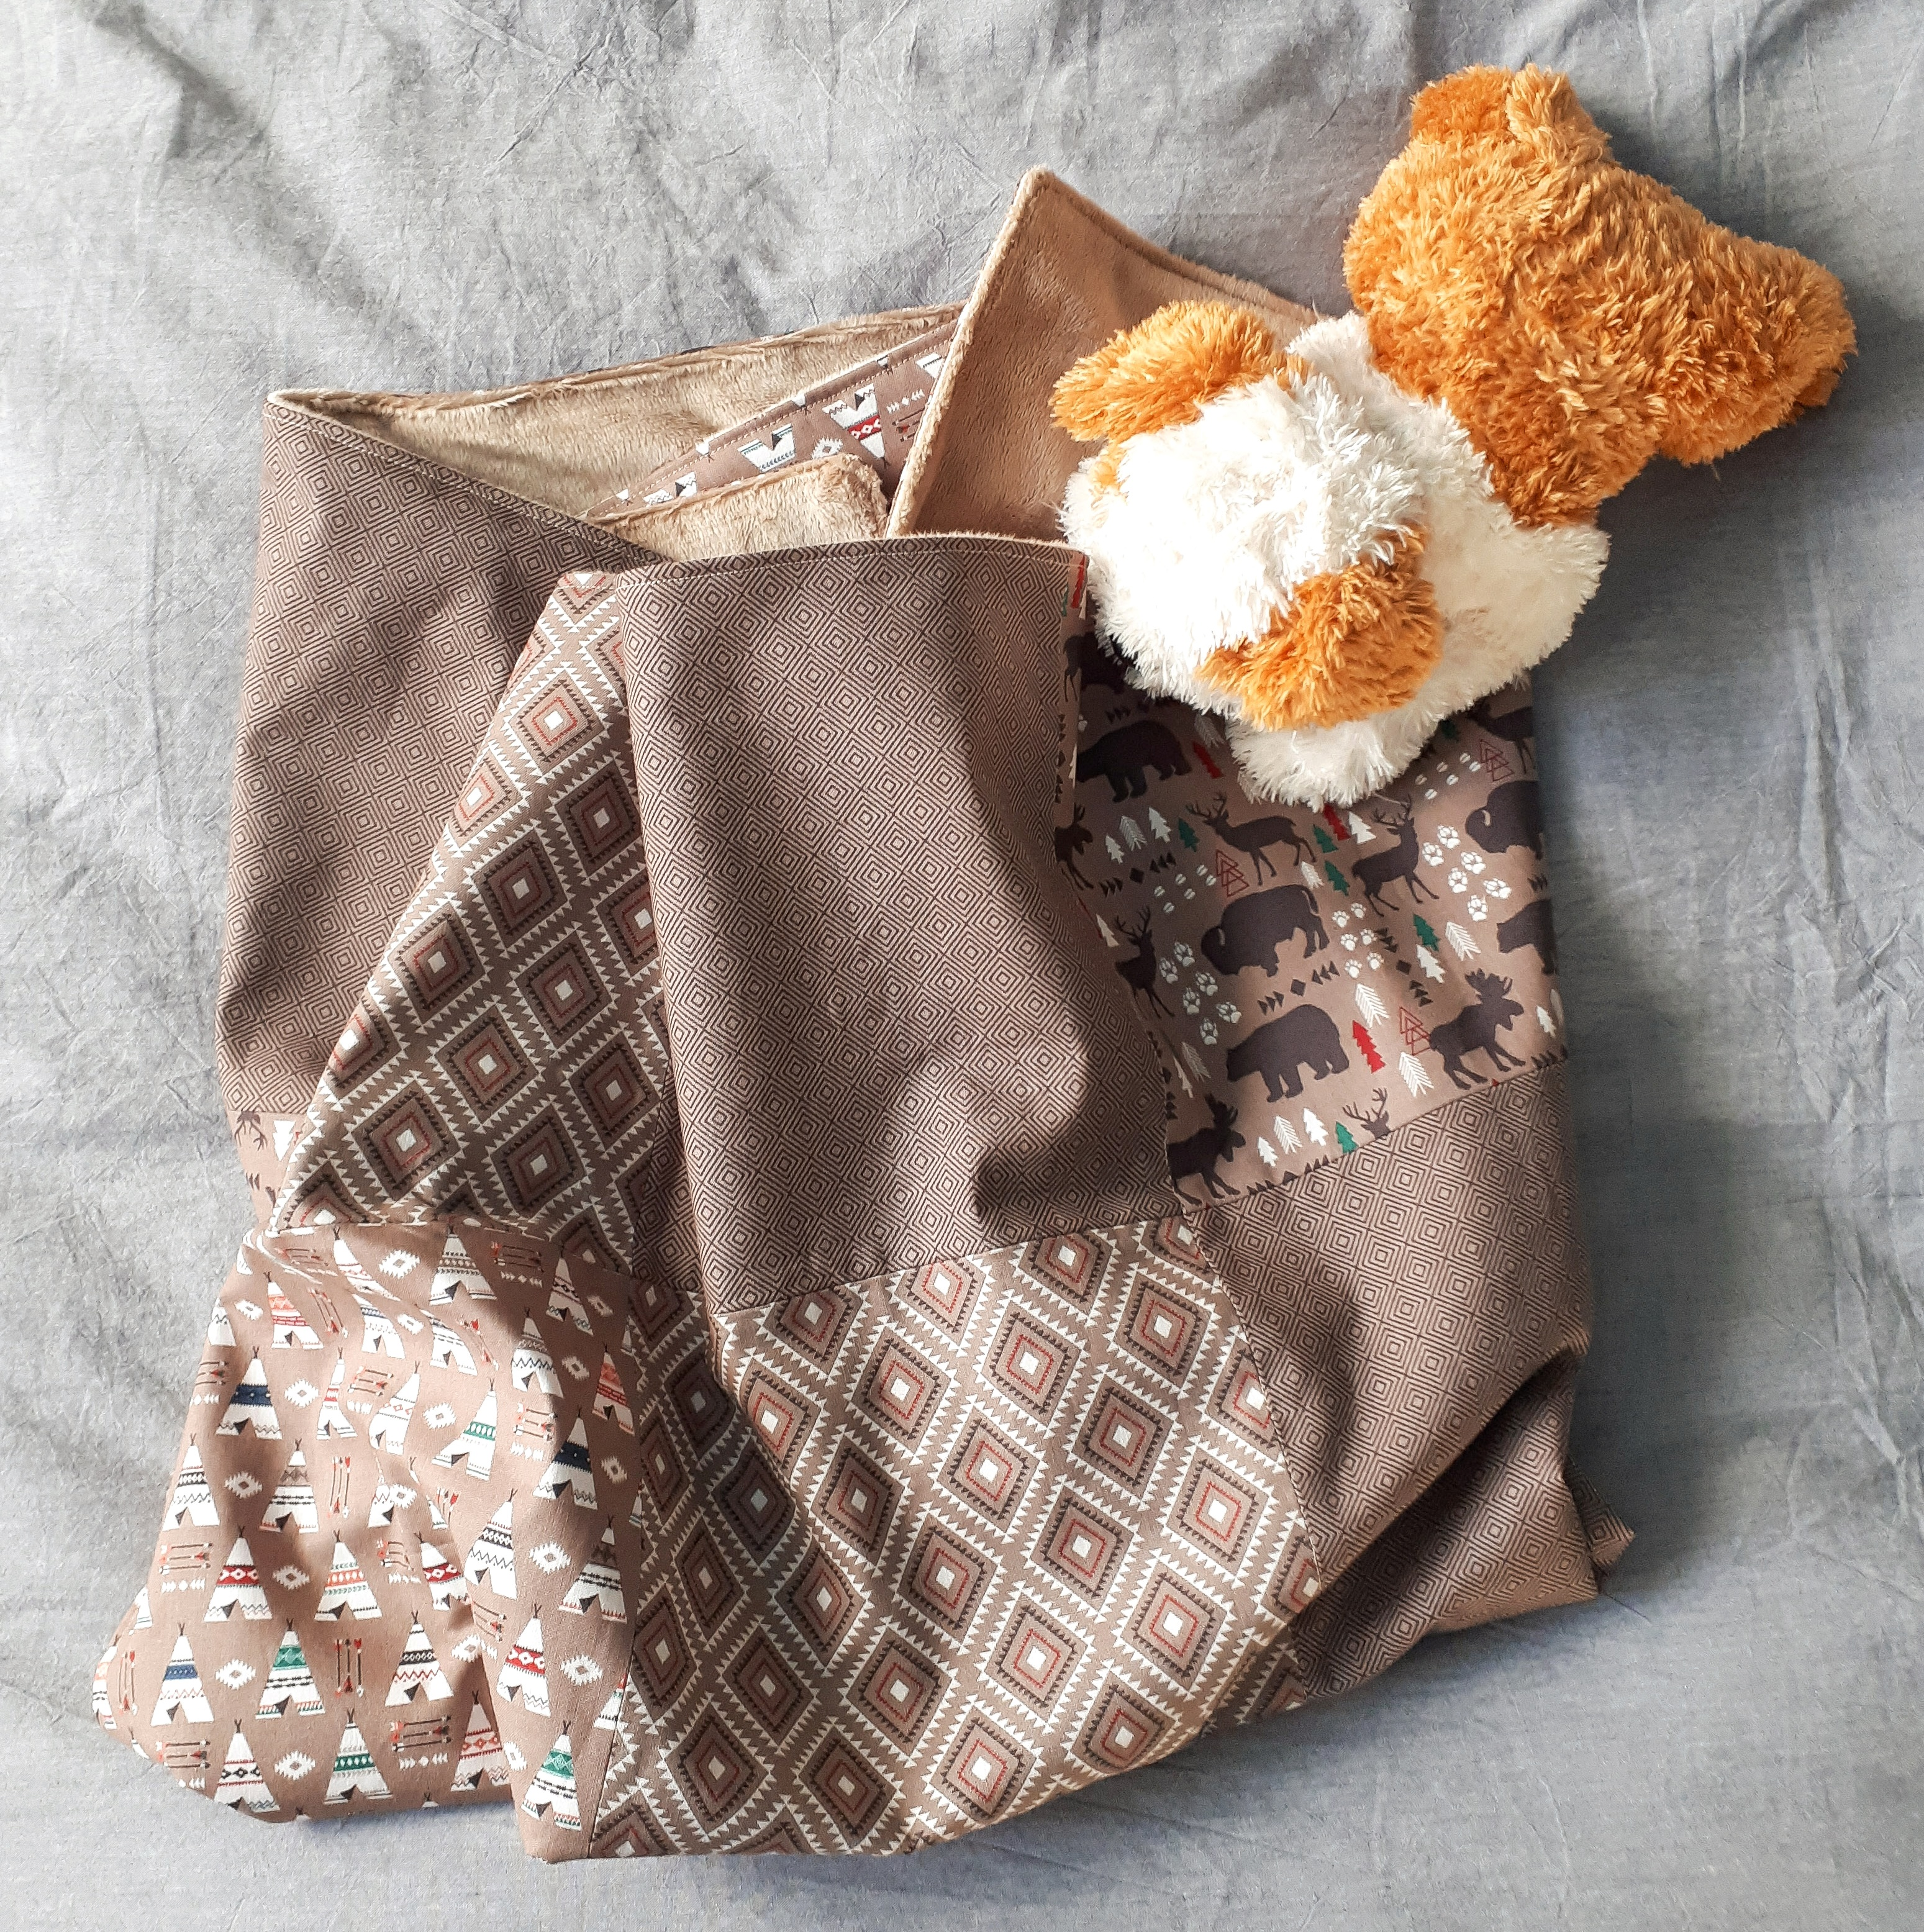 An adorable and super cozy patchwork baby blanket tutorial. This simple sewing project only requires 4 fat quarters and 2 hours to complete!